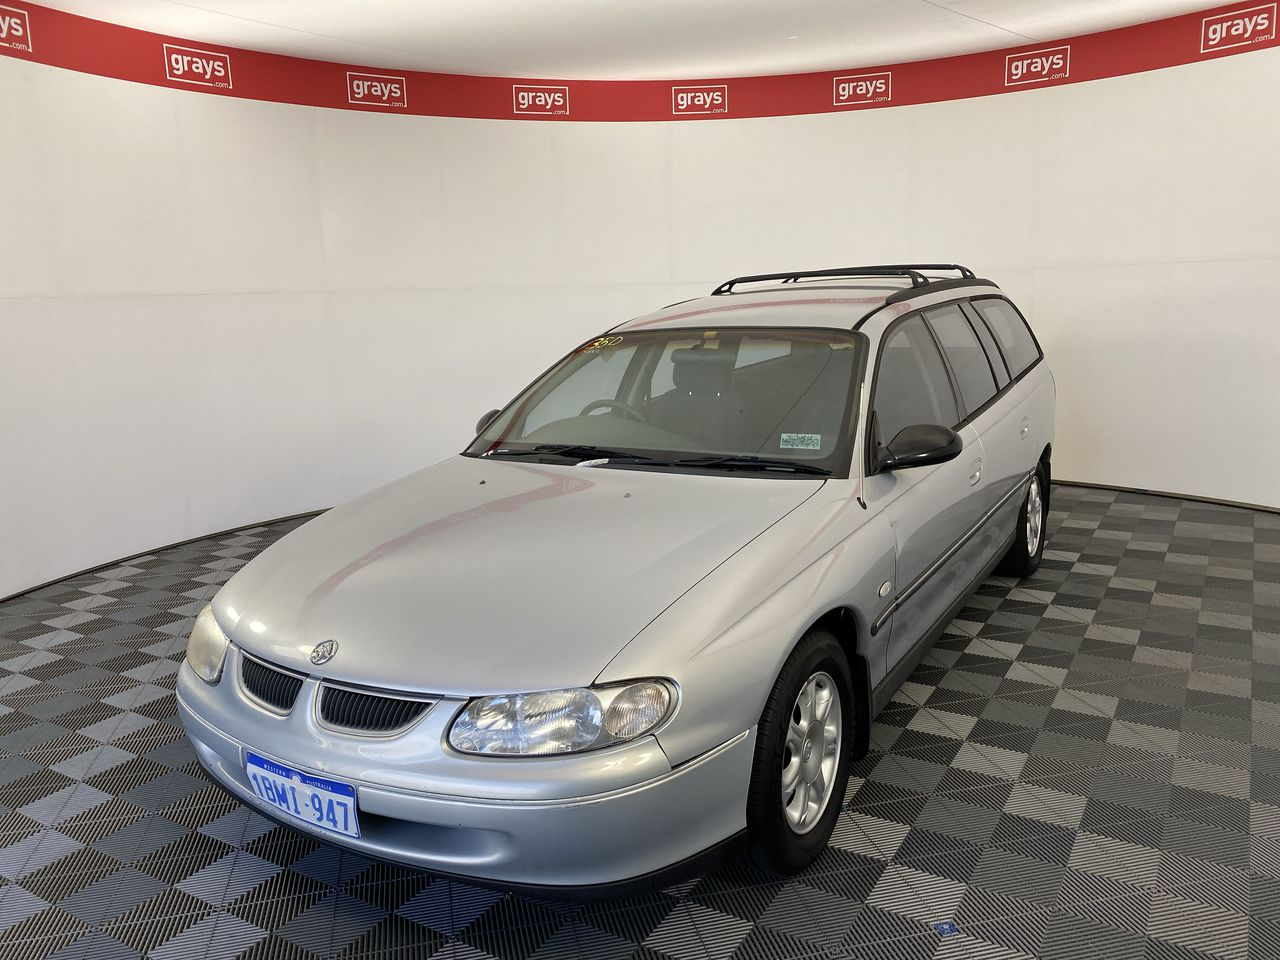 1999 Holden Commodore Olympic Edition VTII Automatic Wagon